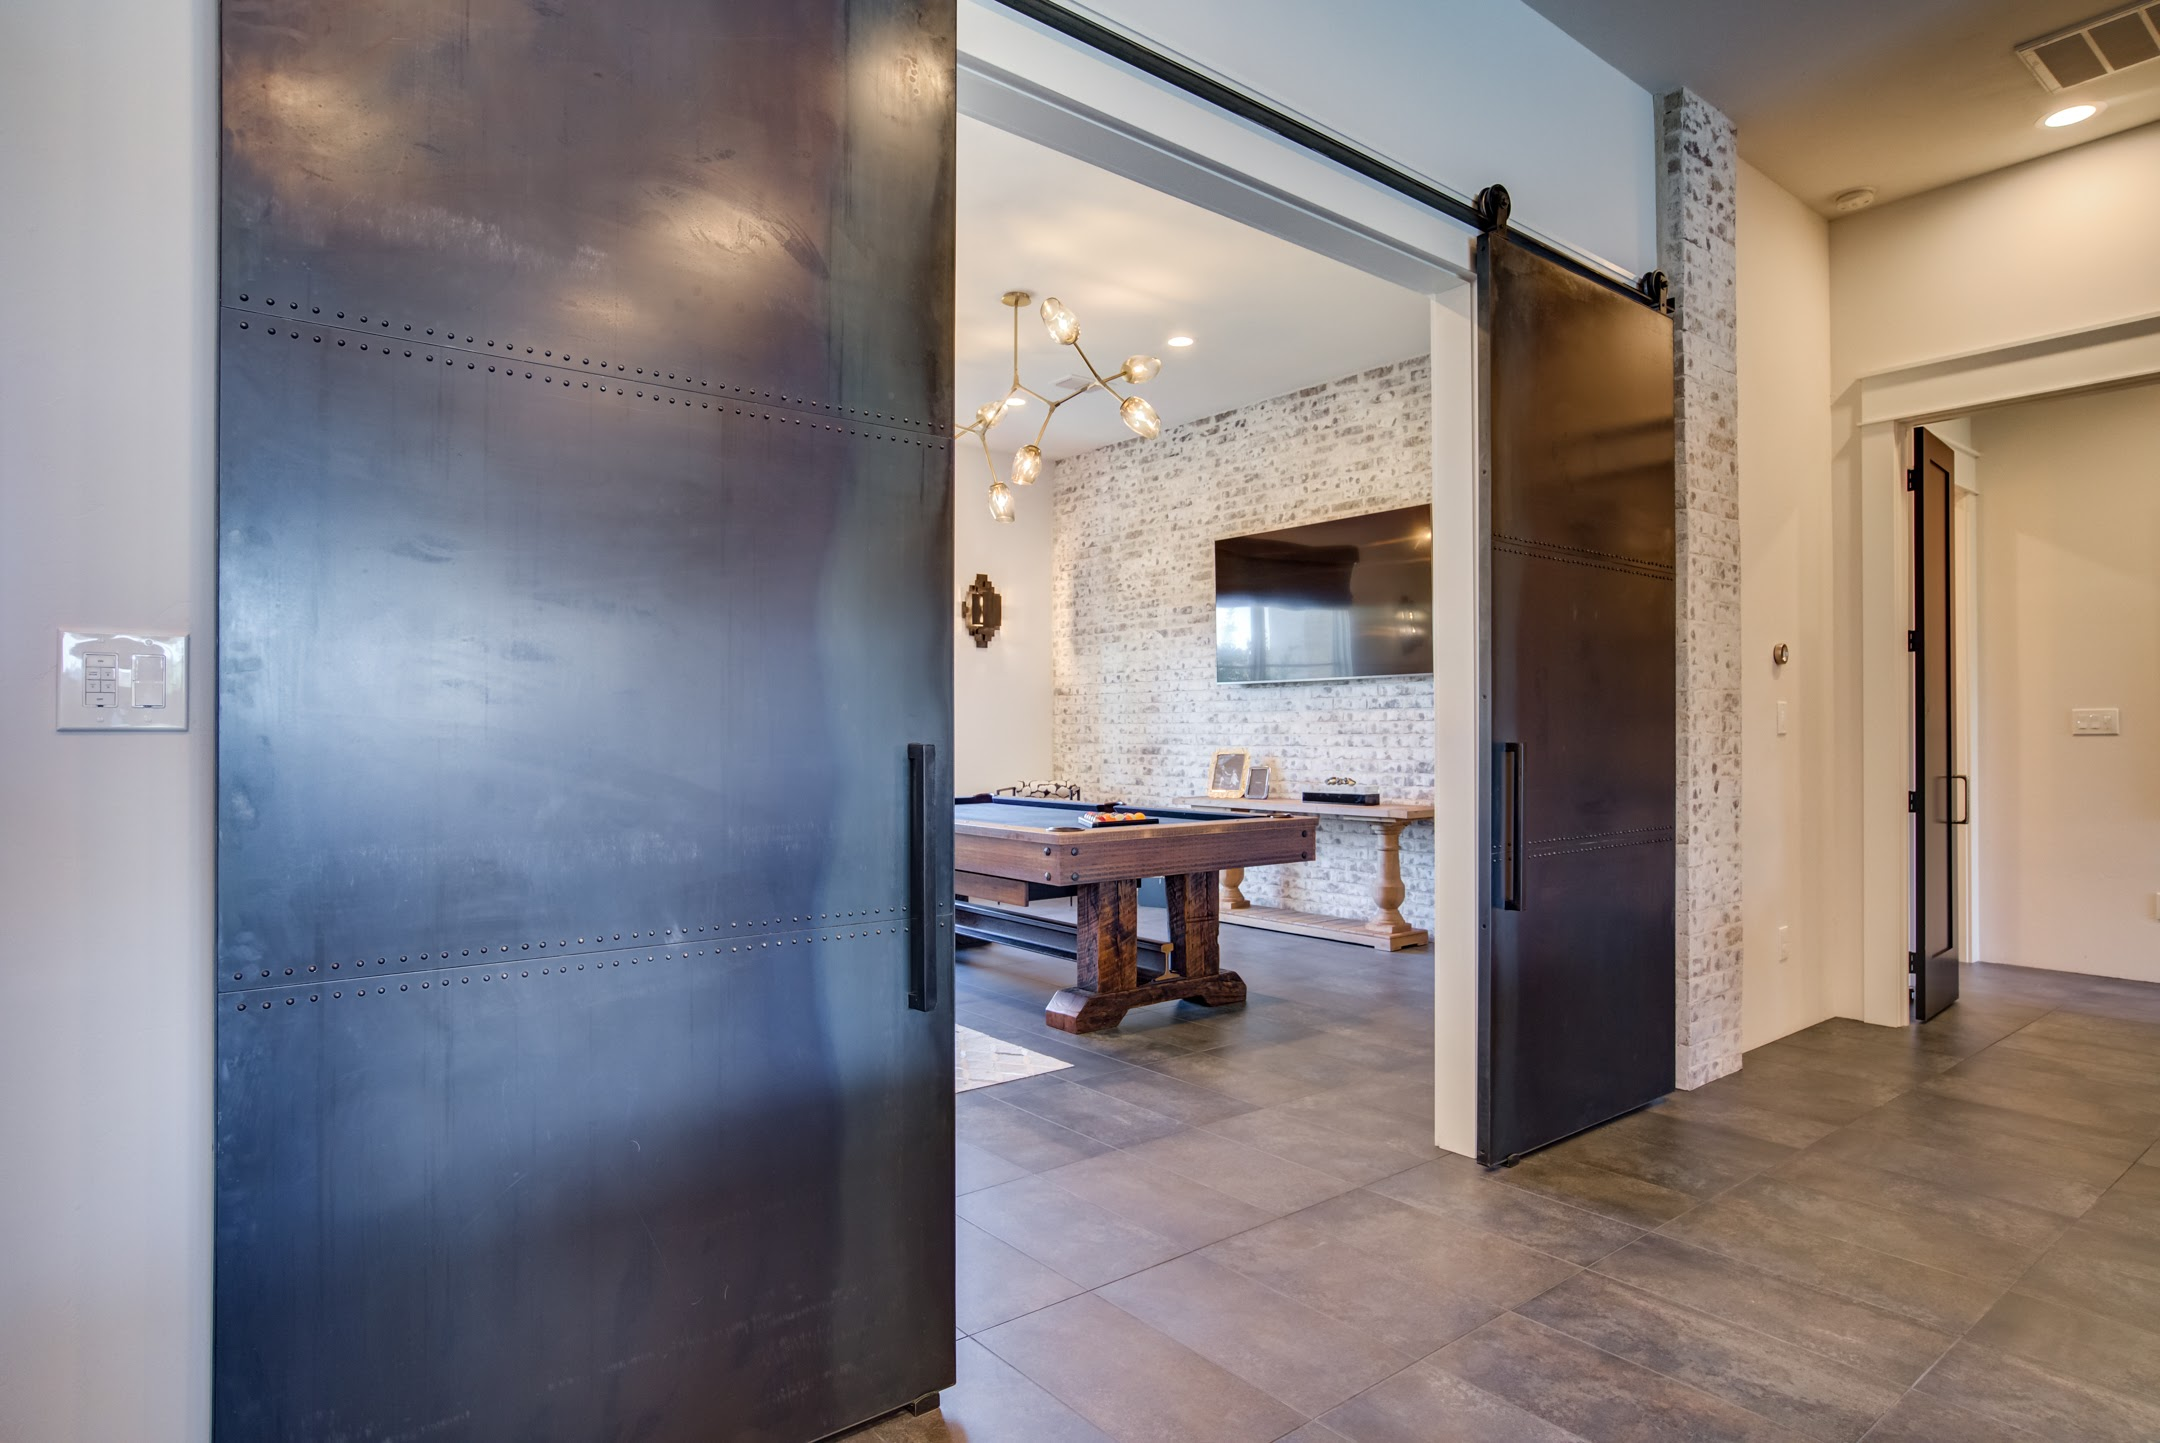 hot rolled steel double barn doors with rivets